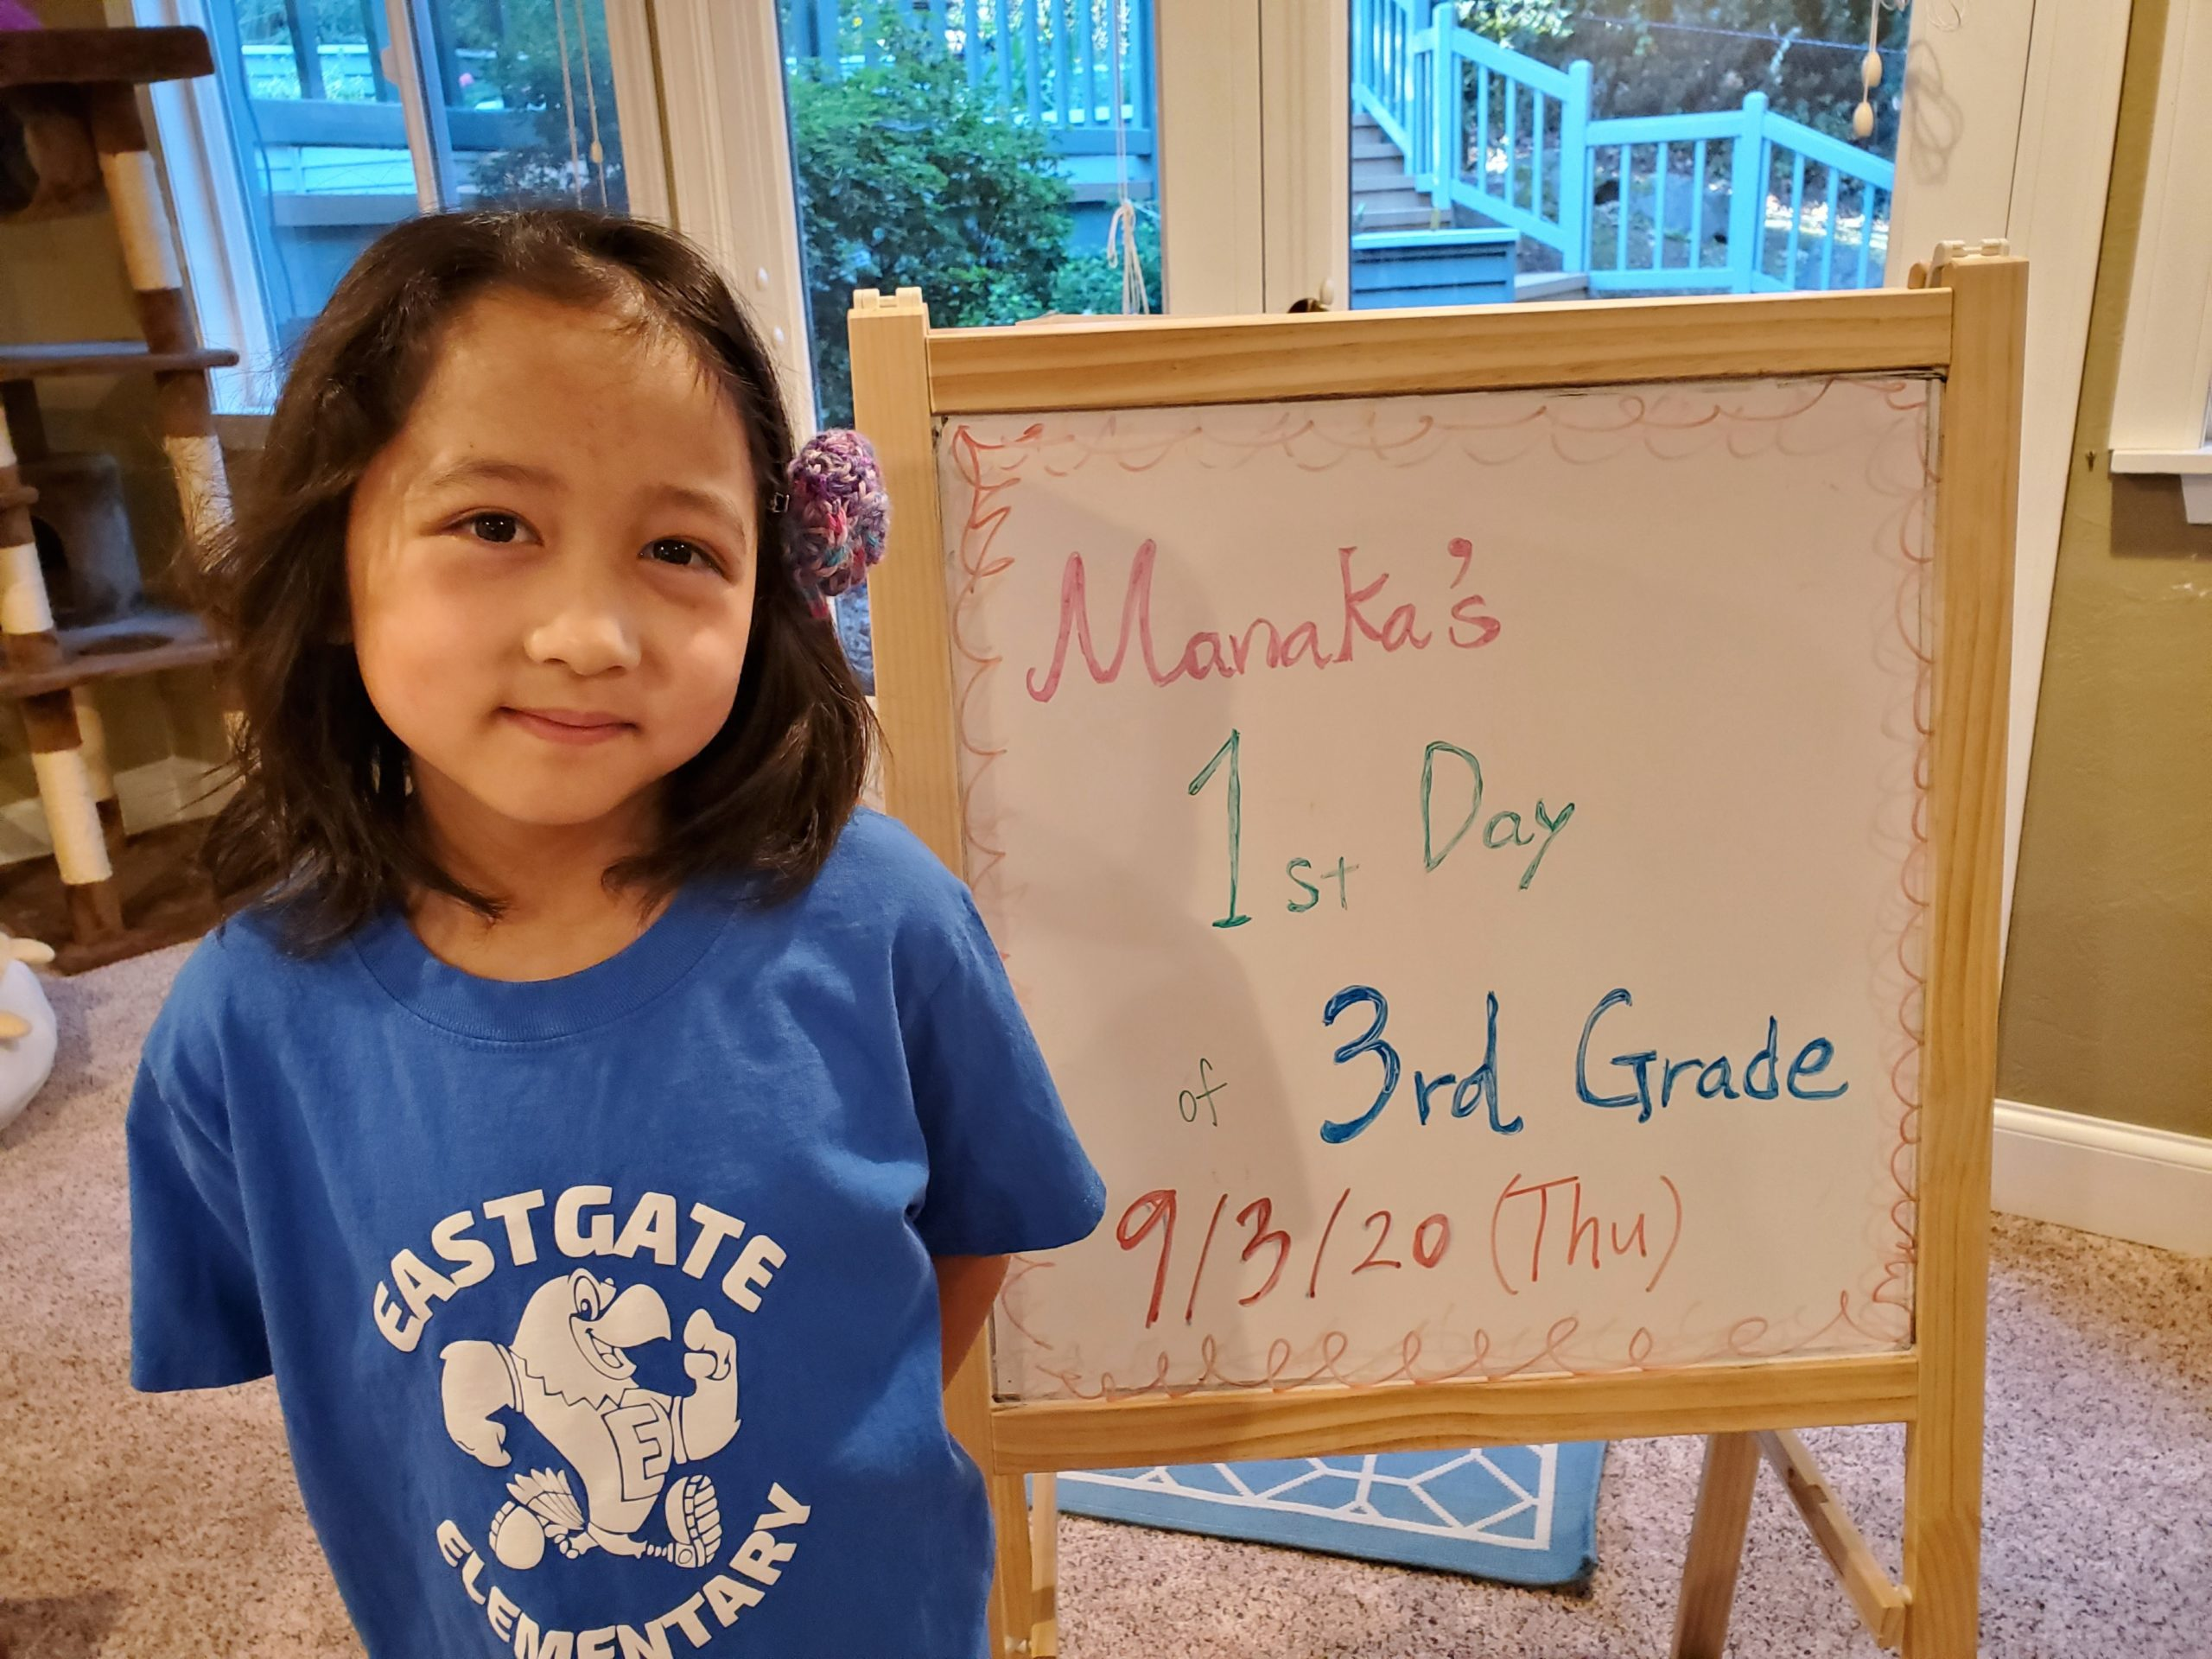 a student in front of a sign that says Manaka's 1st day of 3rd grade